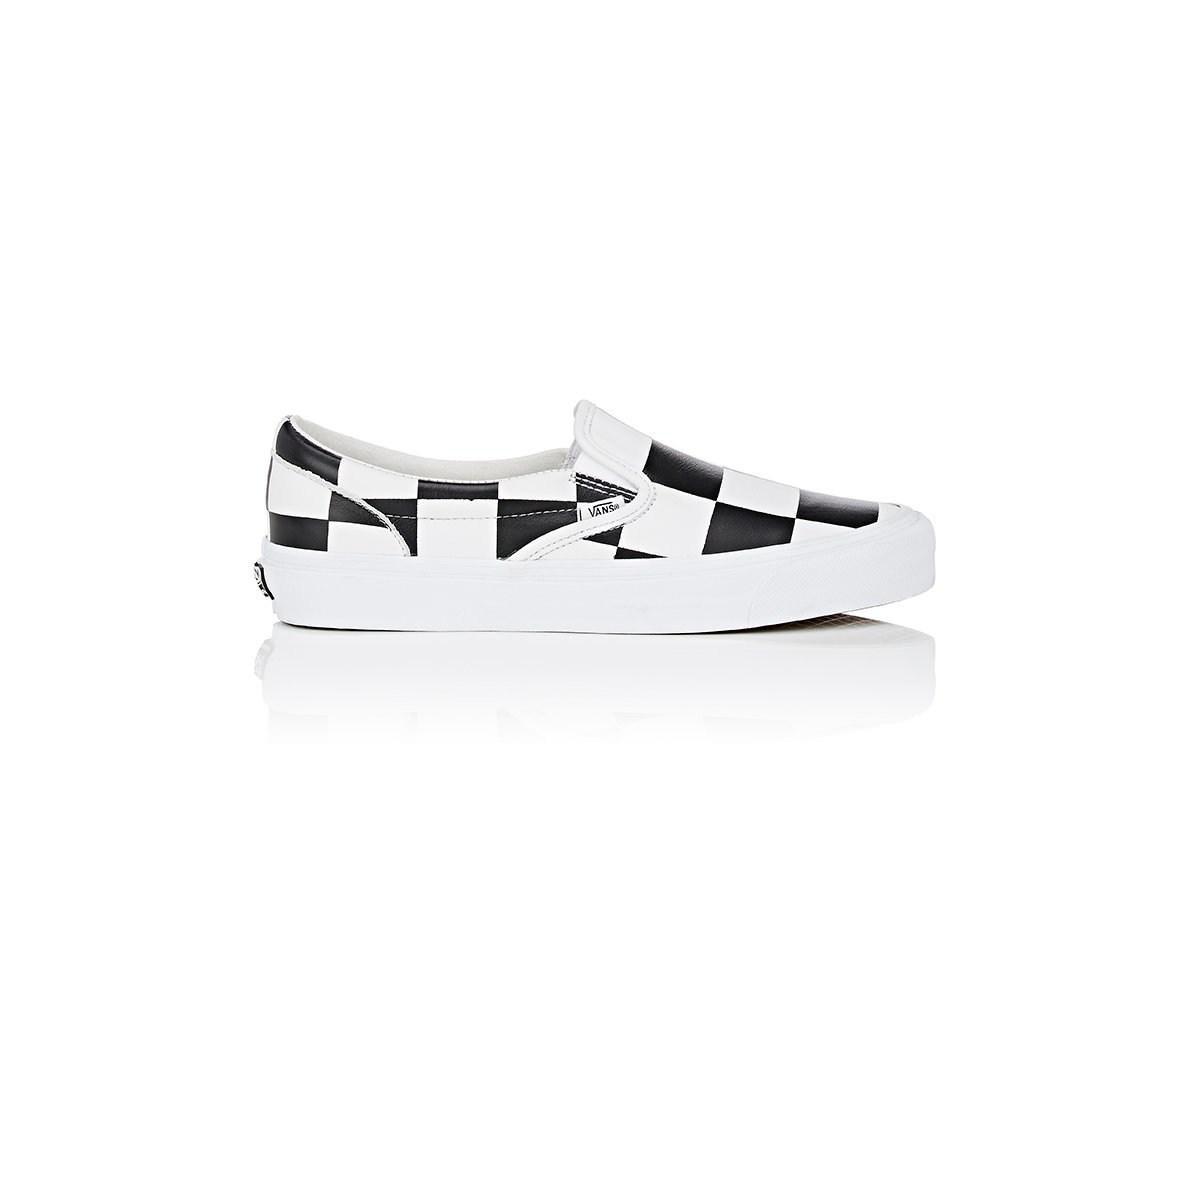 ae366729a8 Vans Og Classic Lx Leather Sneakers in White for Men - Lyst